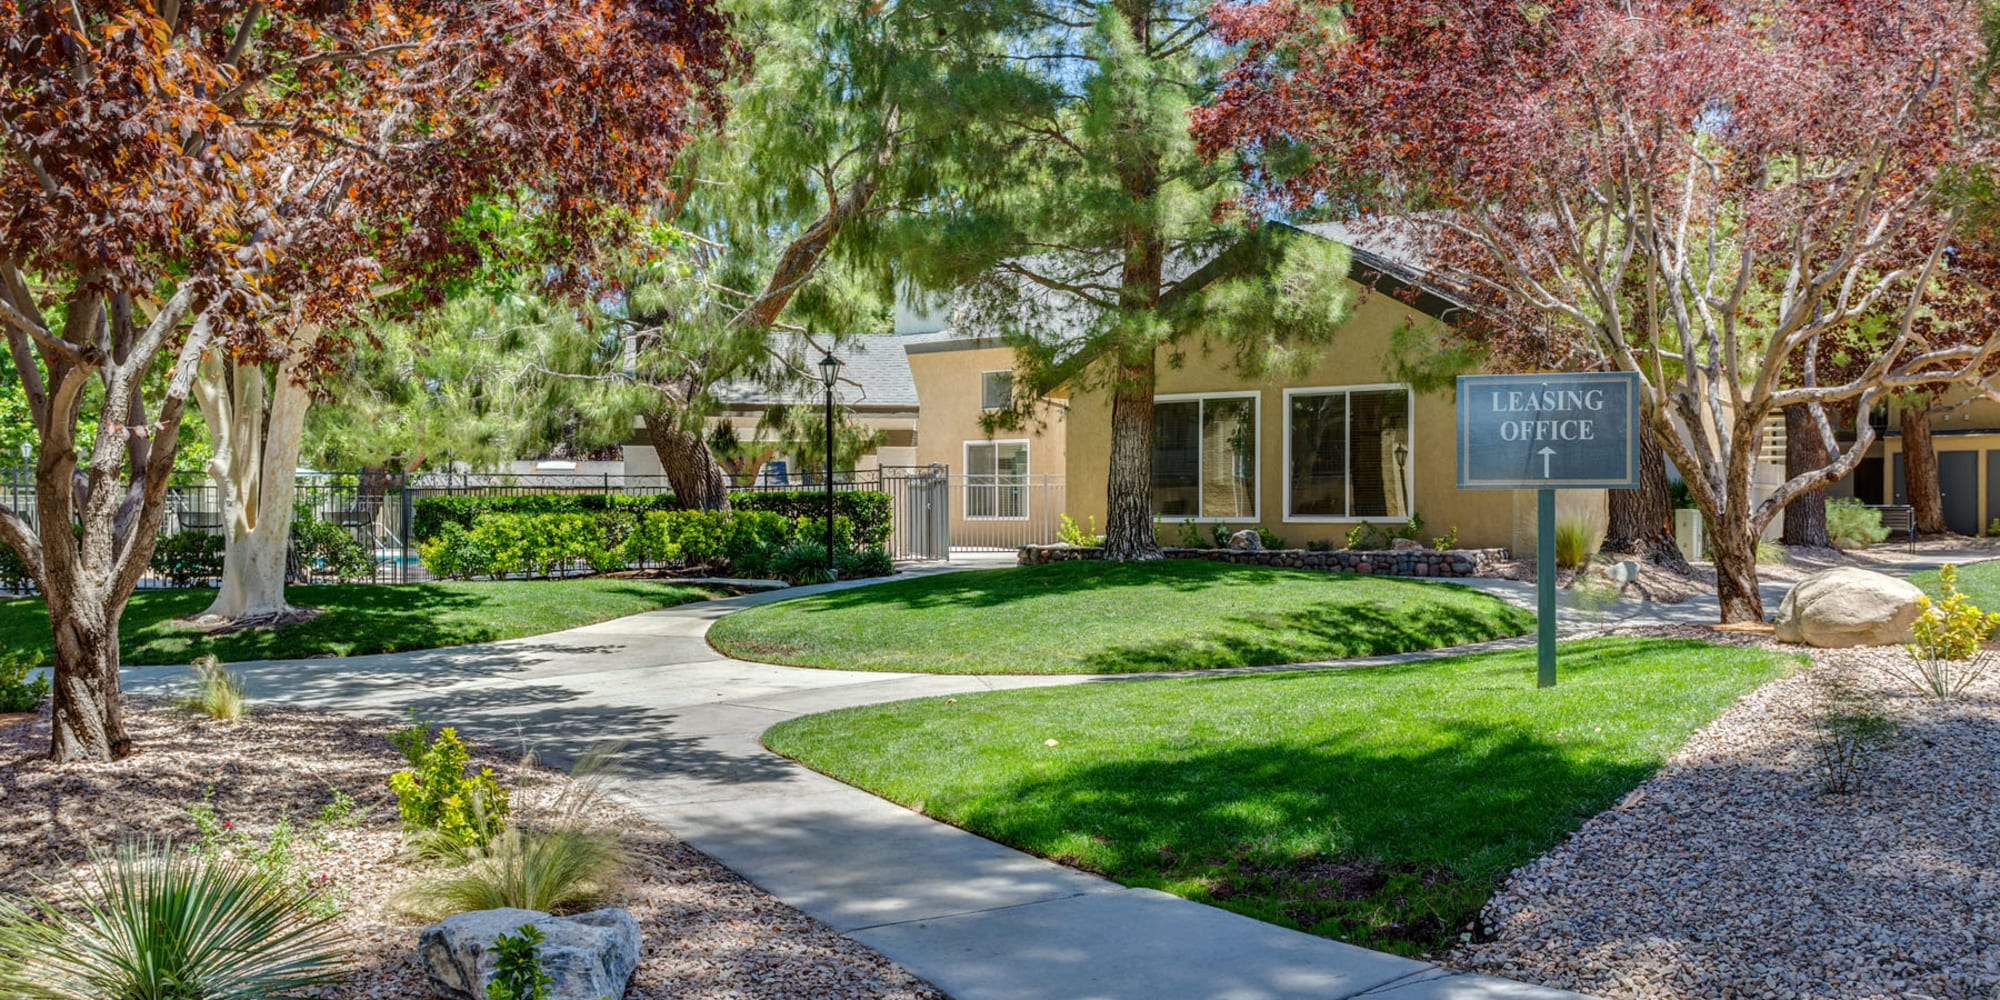 Beautifully groomed landscaping along pathways leading to the leasing office at Mountain Vista in Victorville, California